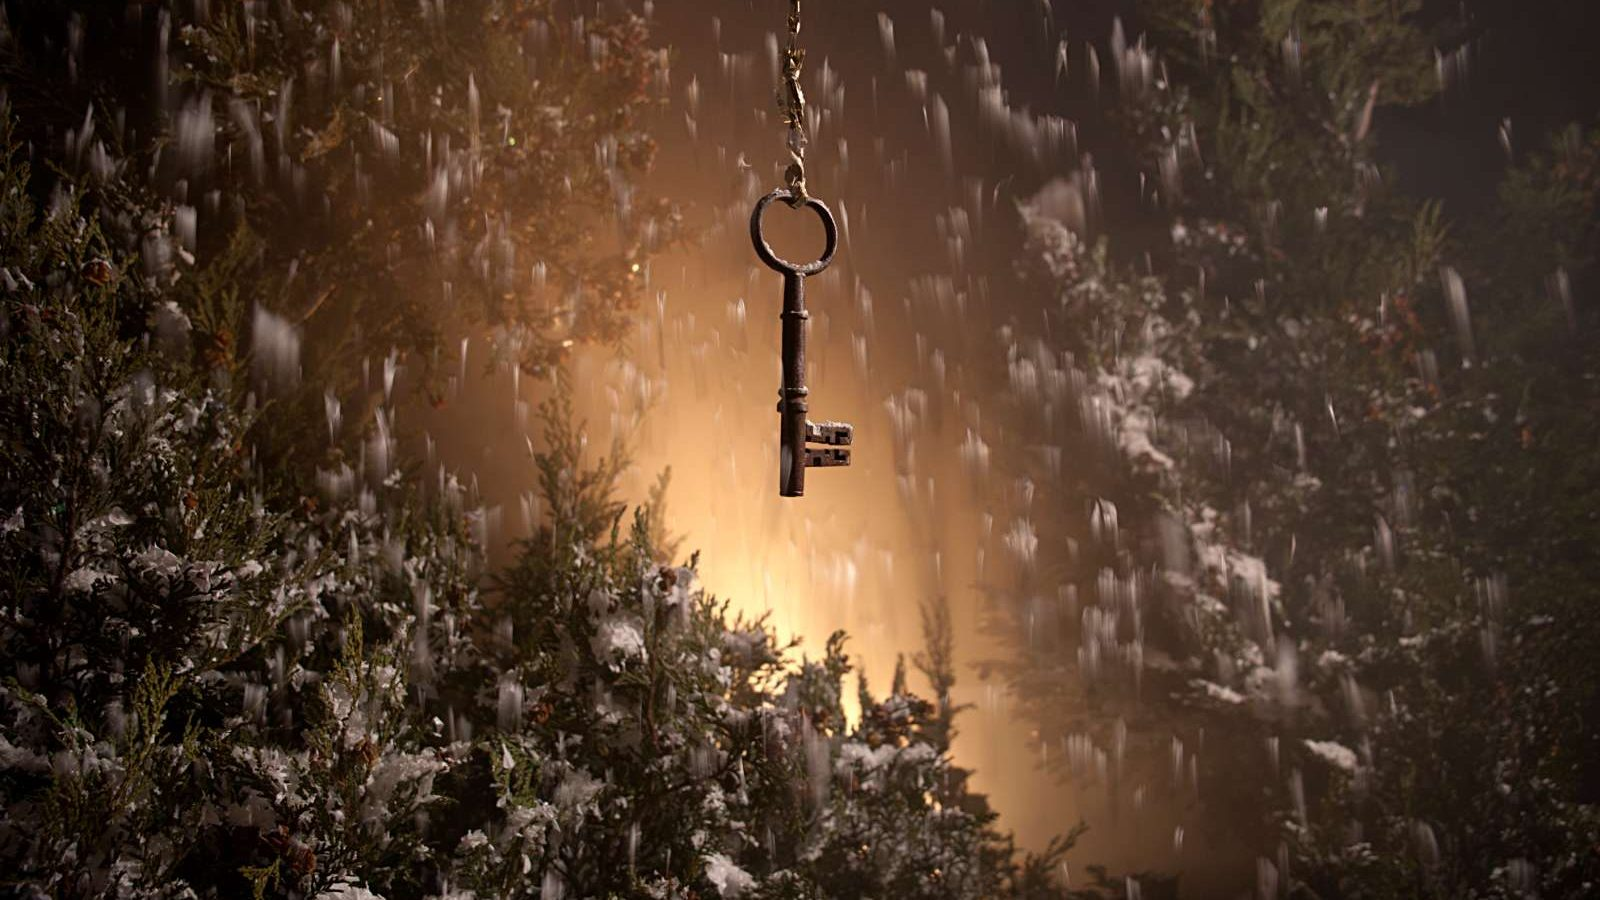 In a snowy setting, a key hangs on a chain in front of some partially shown trees